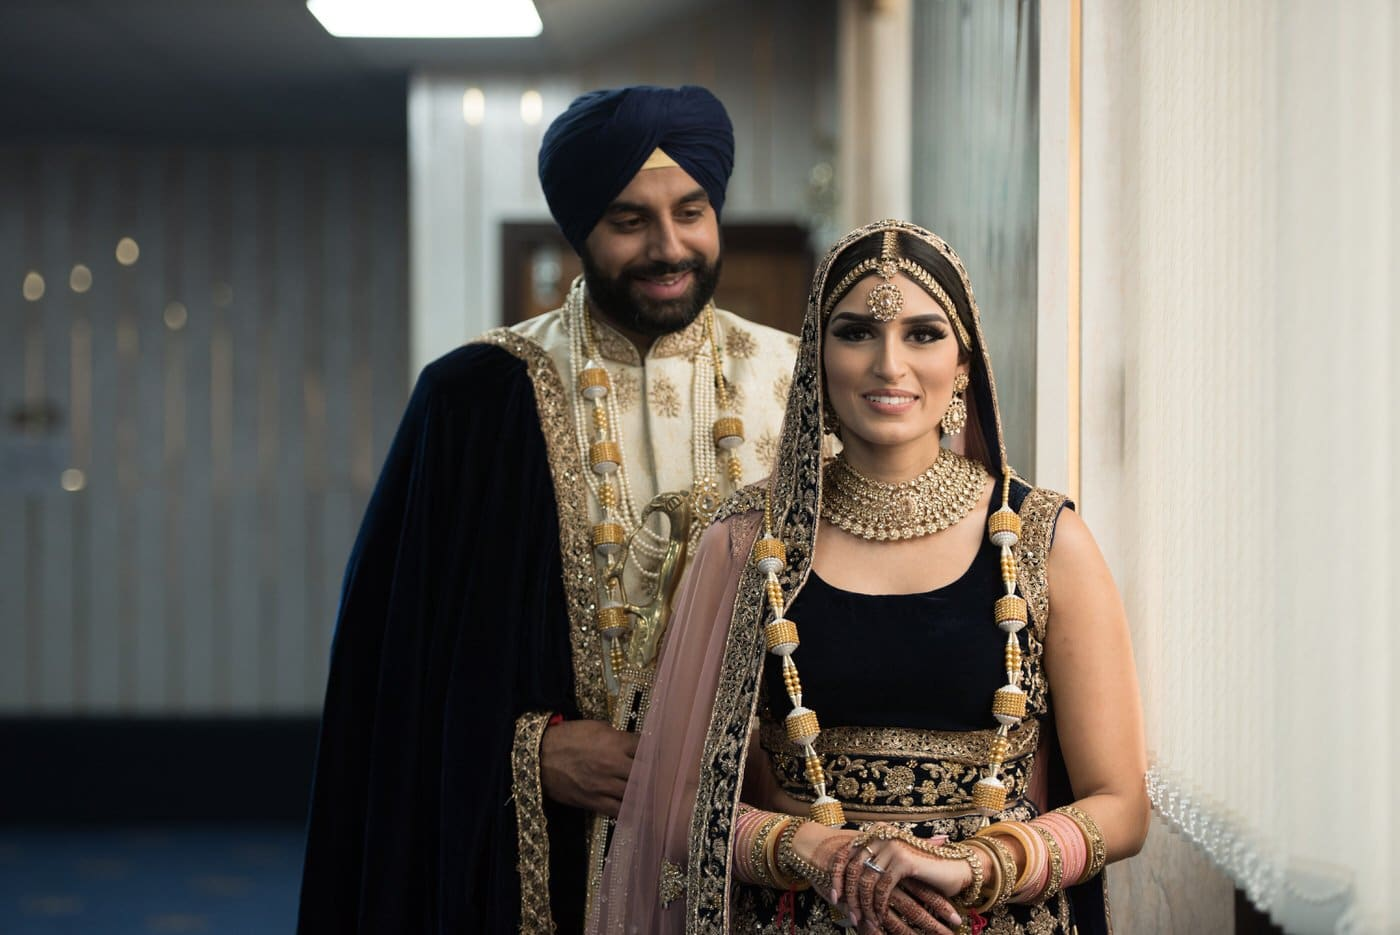 Sikh Wedding Photography and Videography at Goosedale, Nottingham // Nuvee and Sunny